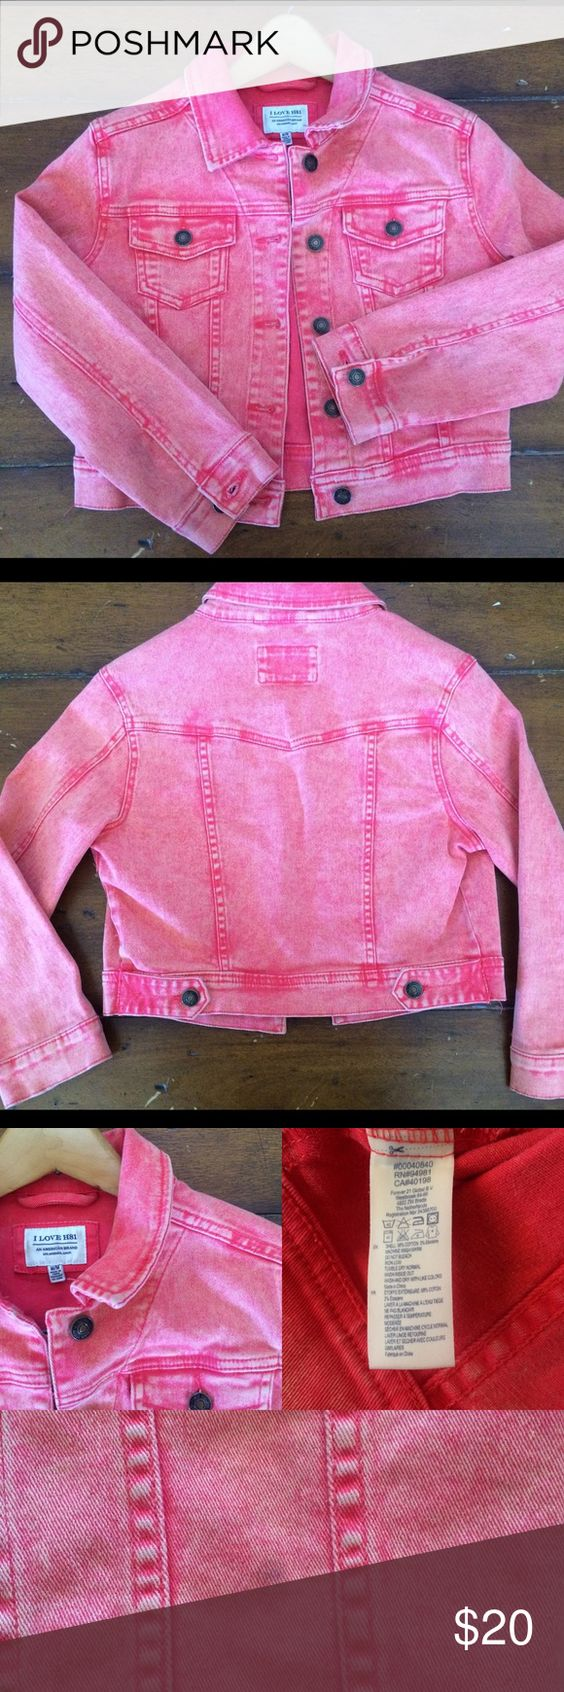 Forever 21 denim jacket Coral colored denim jacket! So cute for spring or summer! Light weight and comfortable 😊🐝 98% cotton 2% elastic NOTE: there is a small black stain on right side of jacket refer to last picture. Heritage 1981 Jackets & Coats Jean Jackets